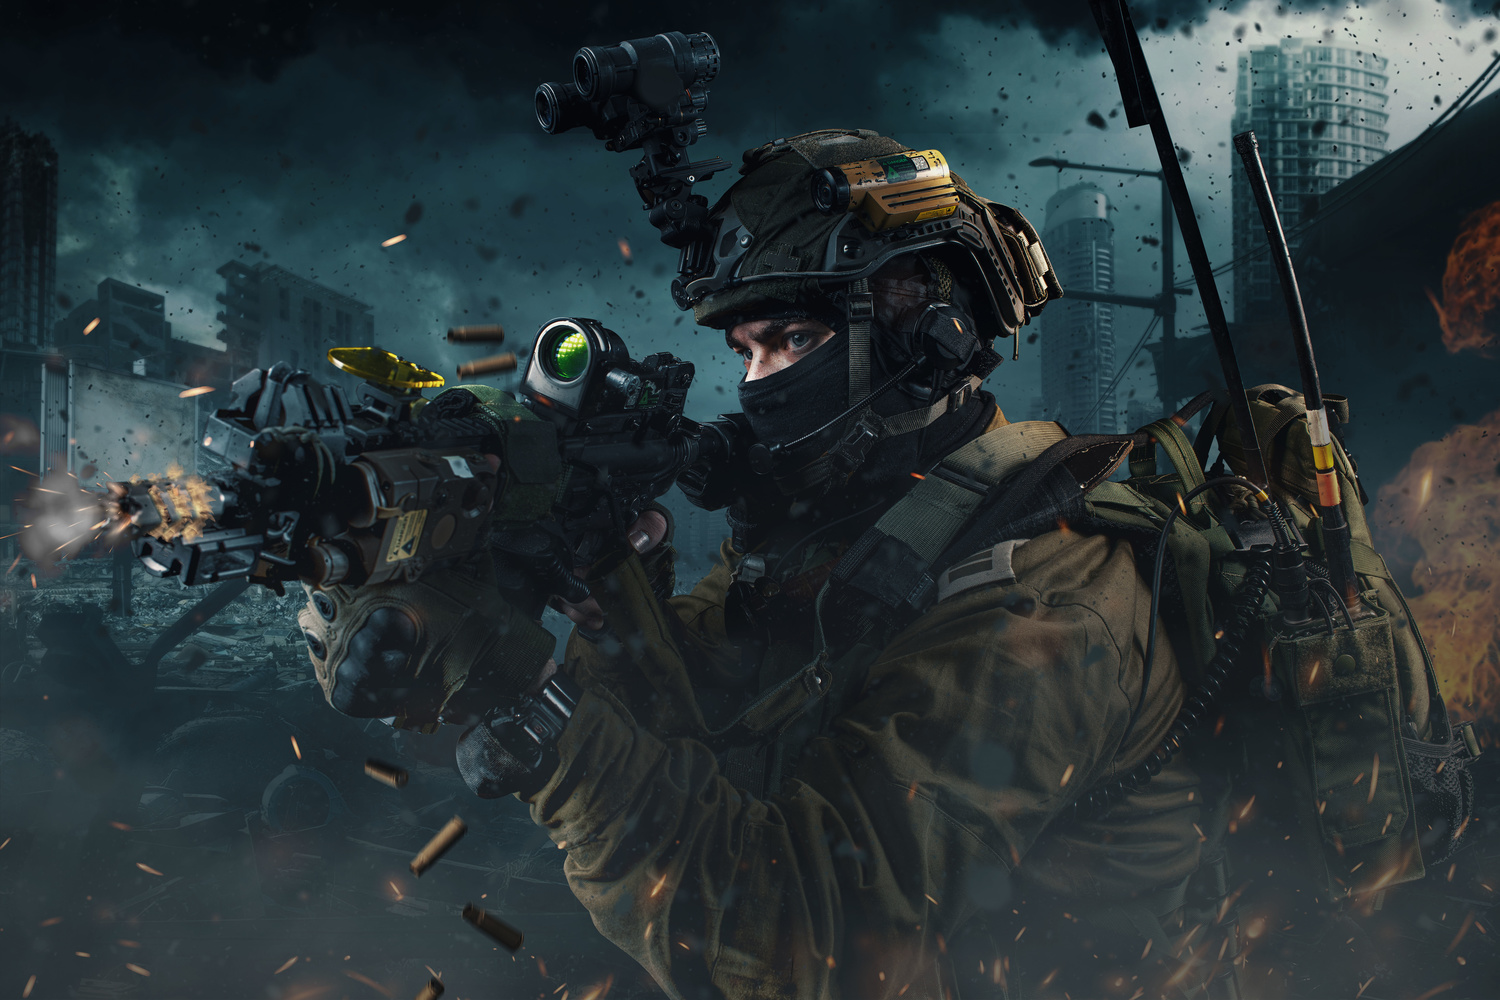 Soldier in Action by Kilcher Thomas